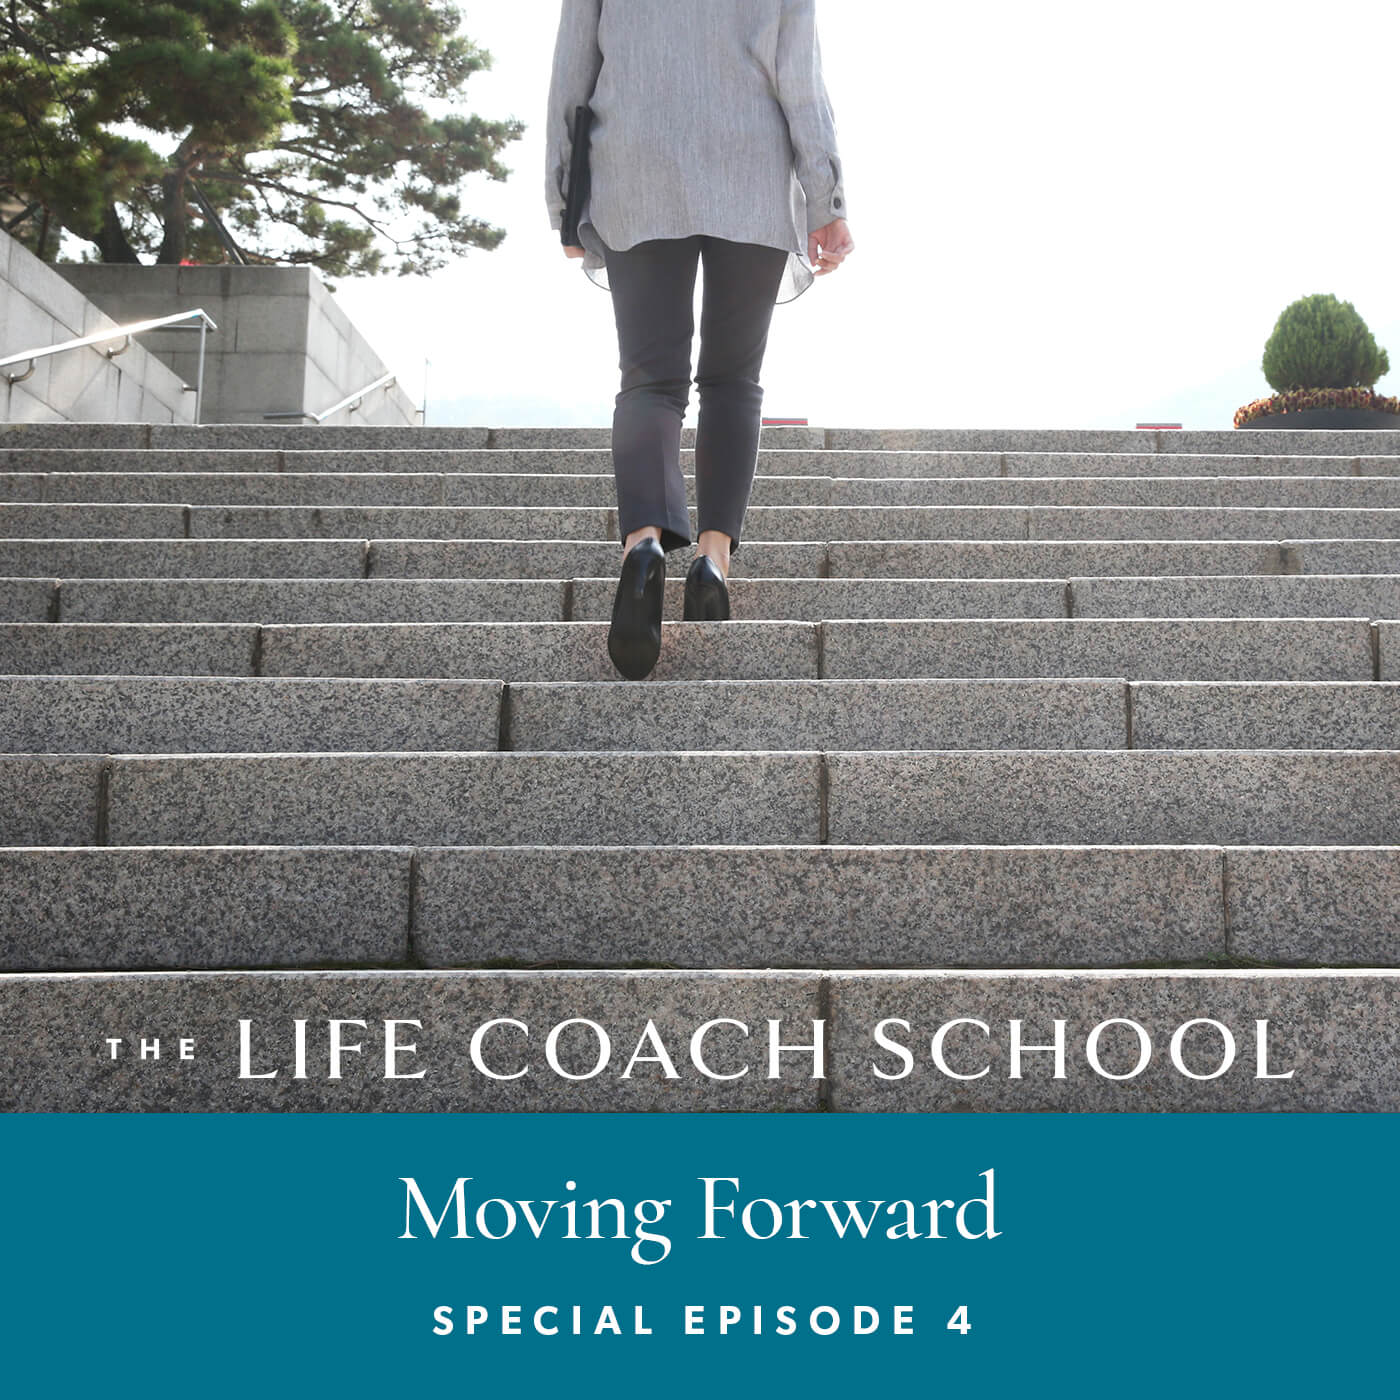 The Life Coach School Podcast with Brooke Castillo | Special Episode | Moving Forward 4